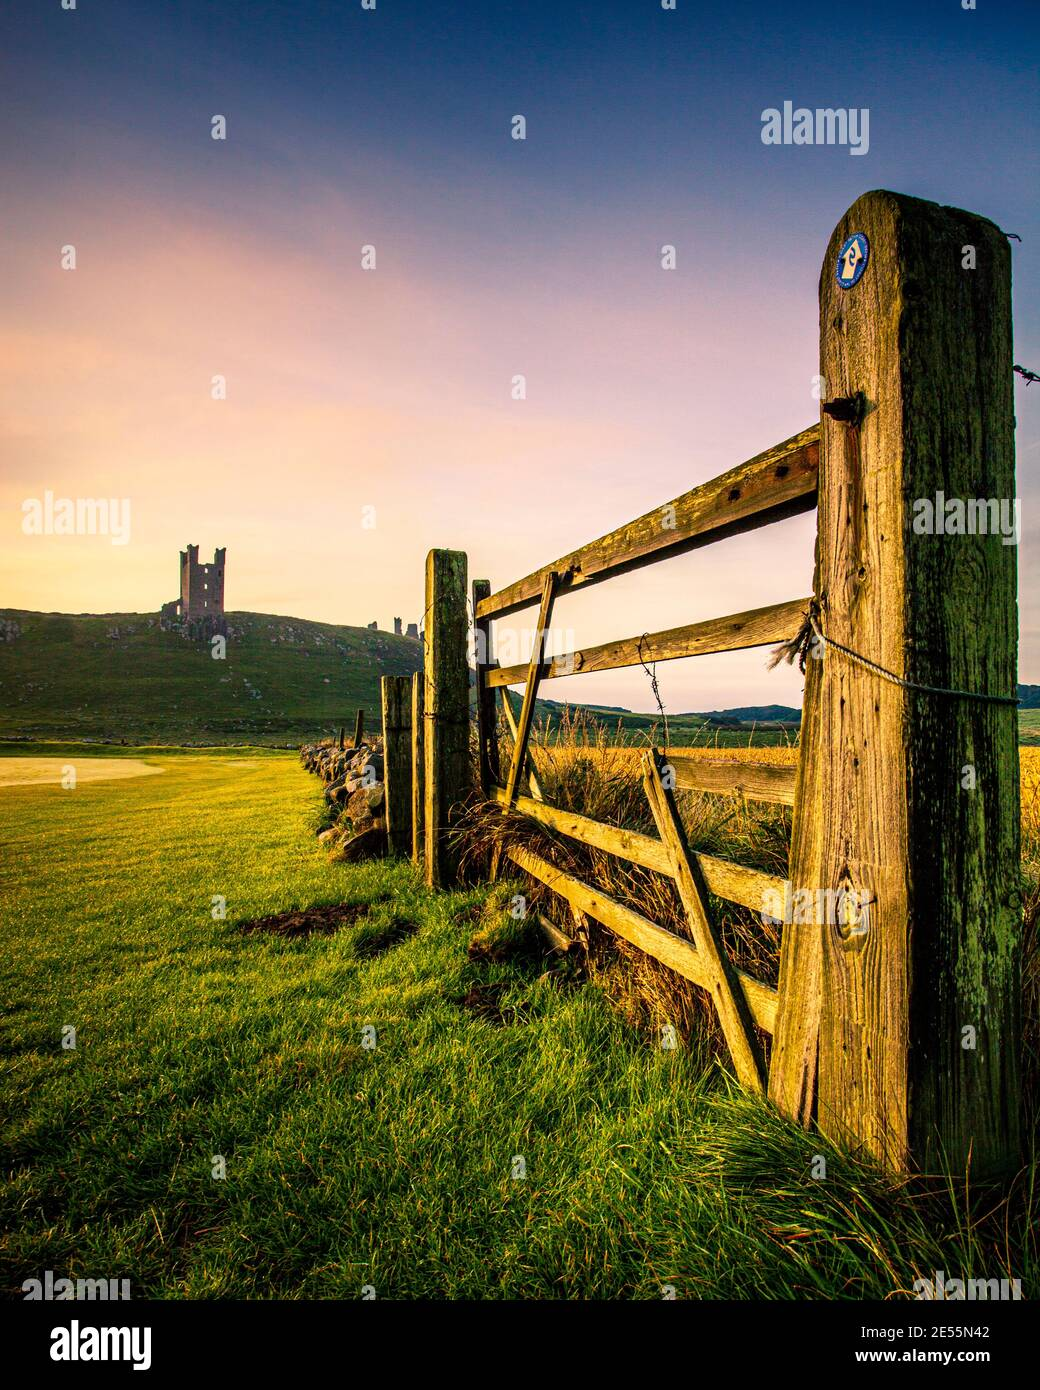 Dunstanburgh castle in Northumberland viewed through a field gate. Stock Photo